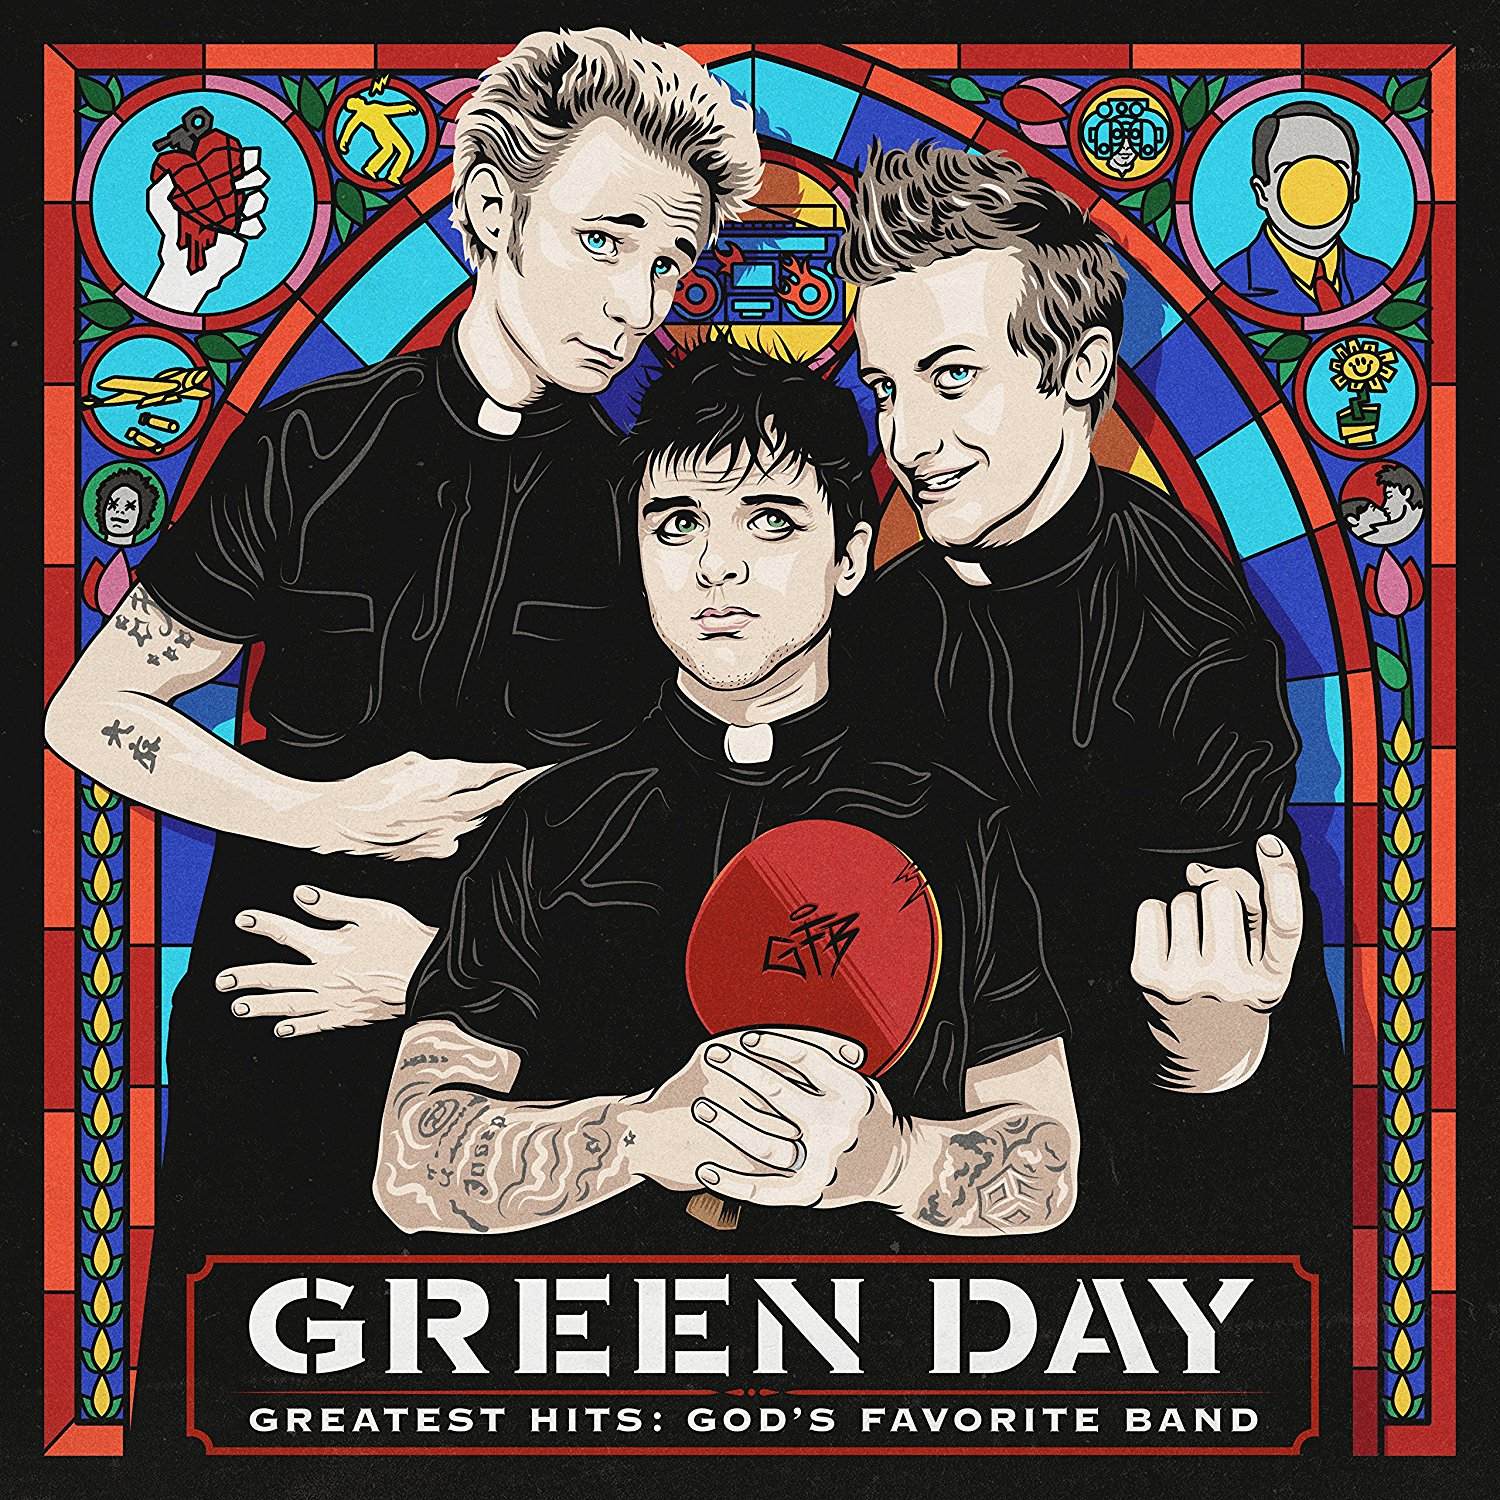 Green day greatest hits YOUparti